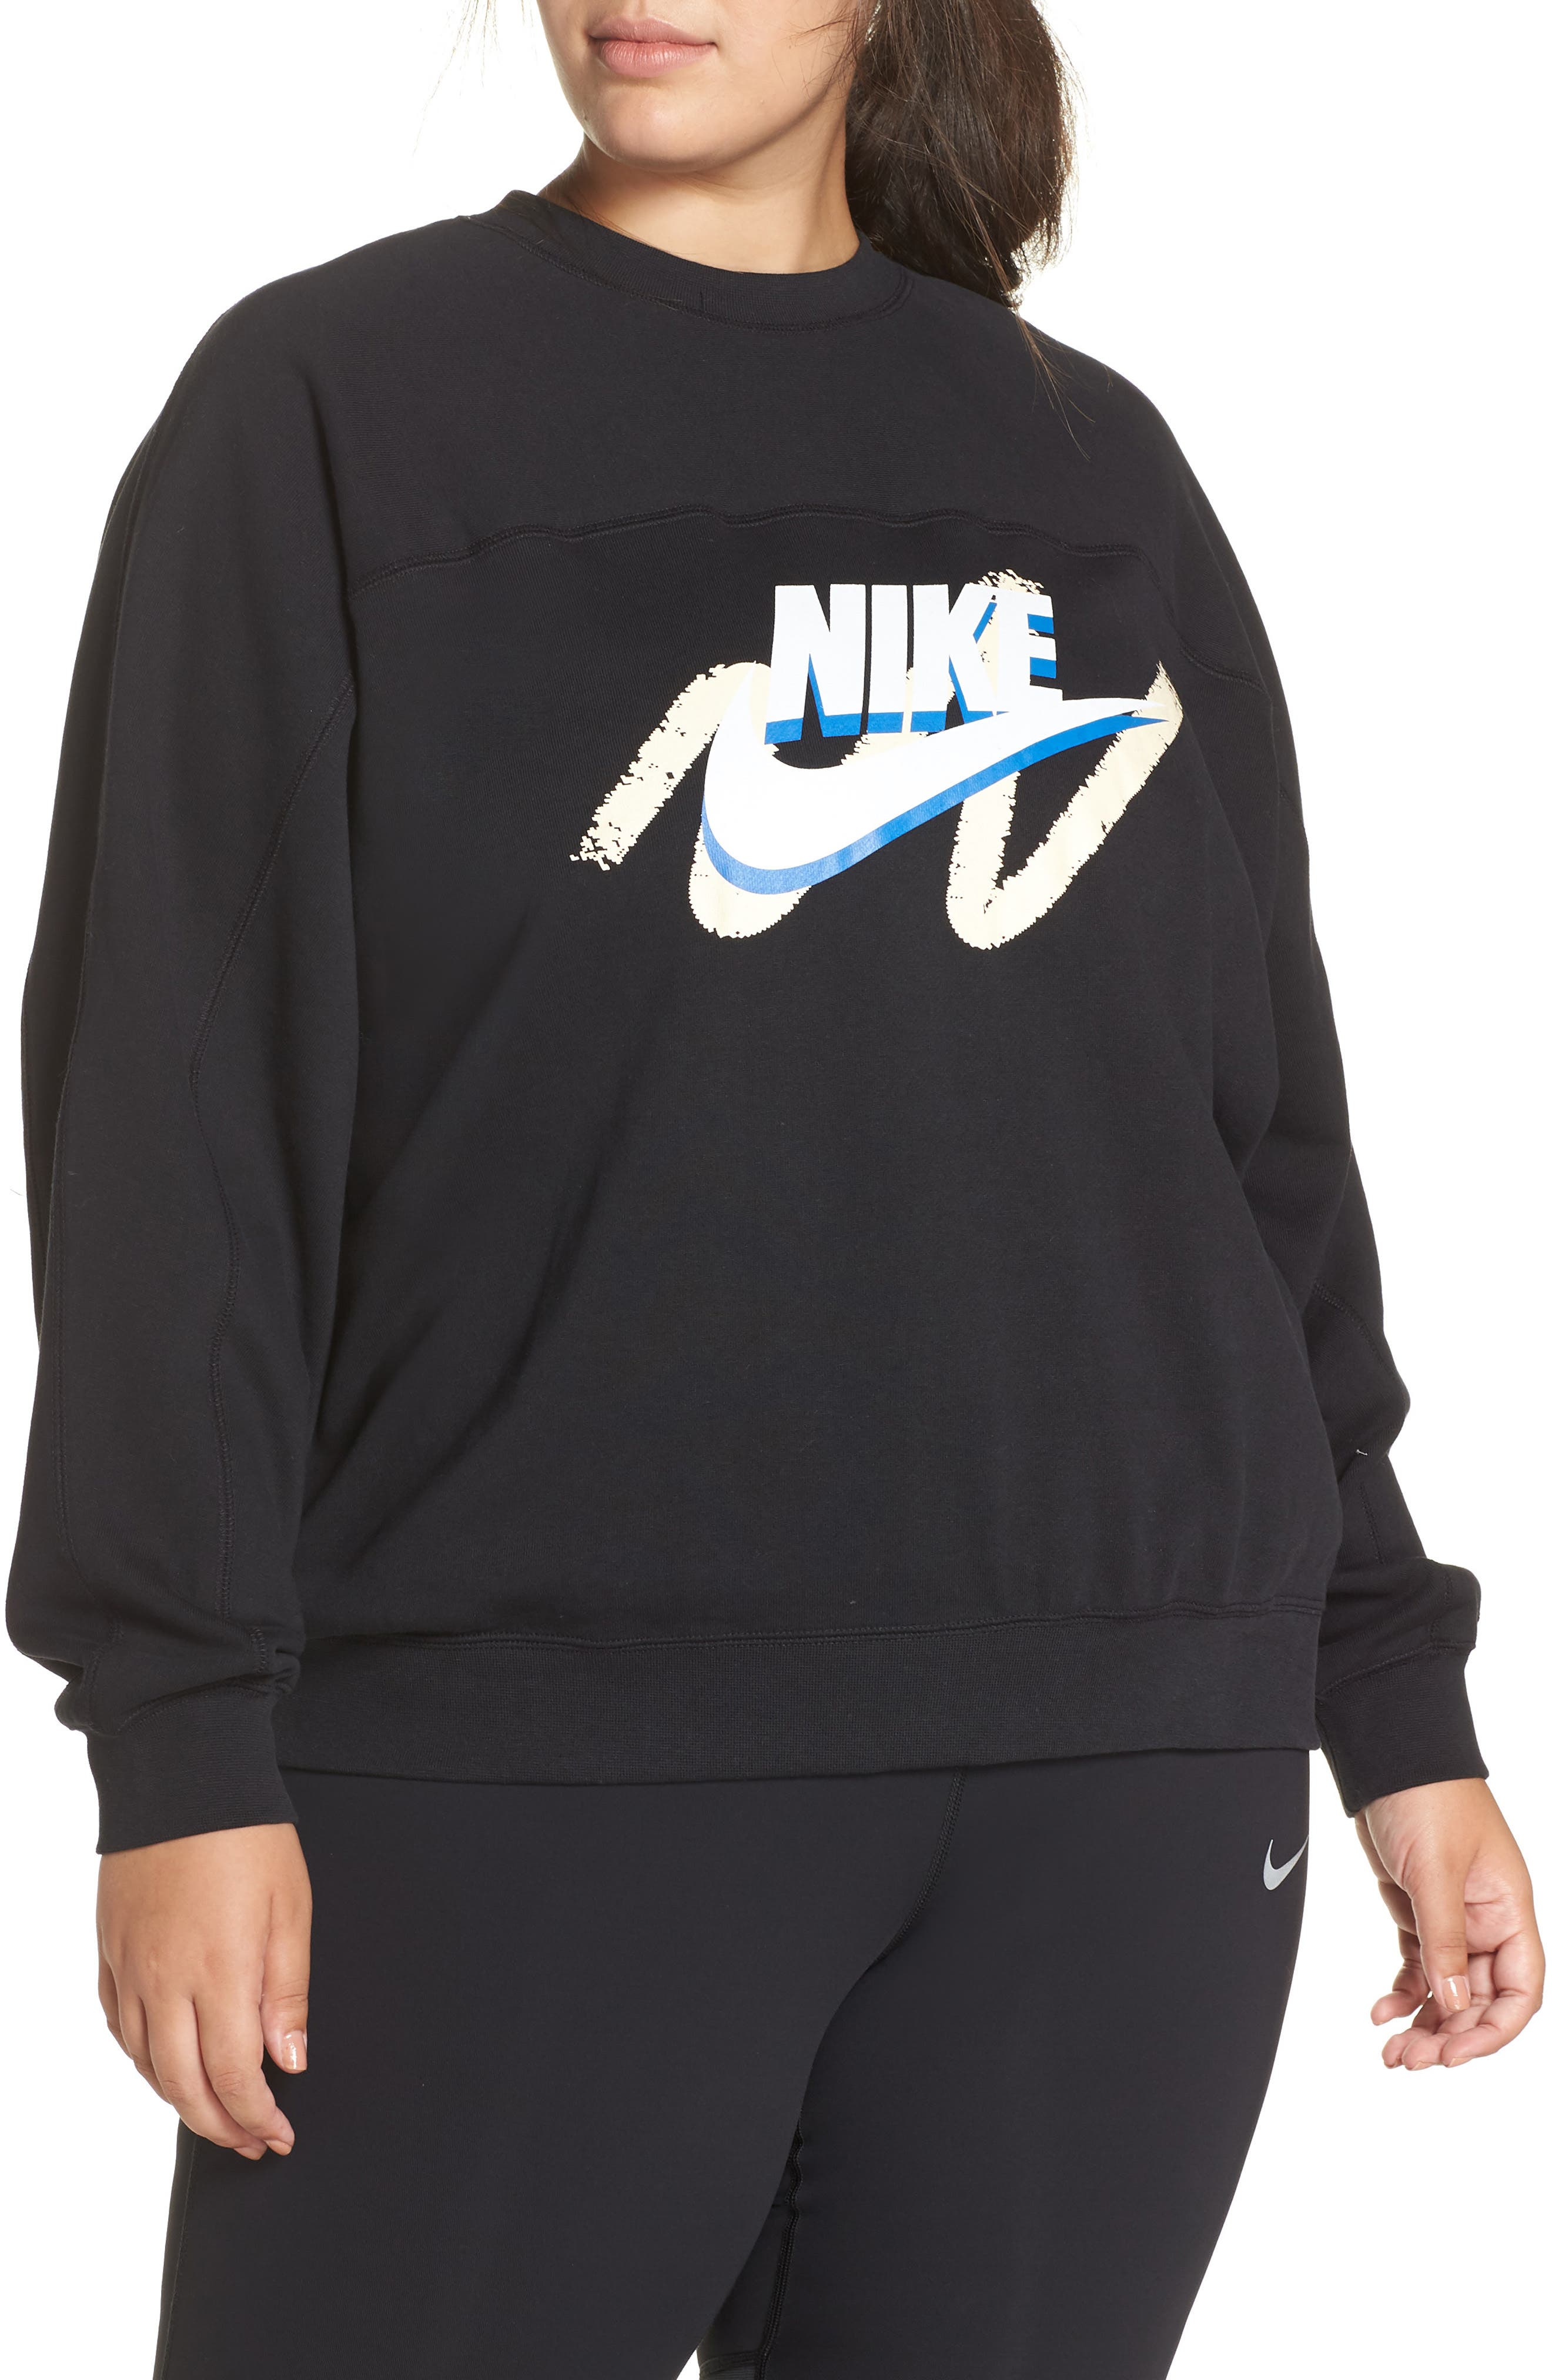 Sportswear Archive Sweatshirt,                         Main,                         color, 010